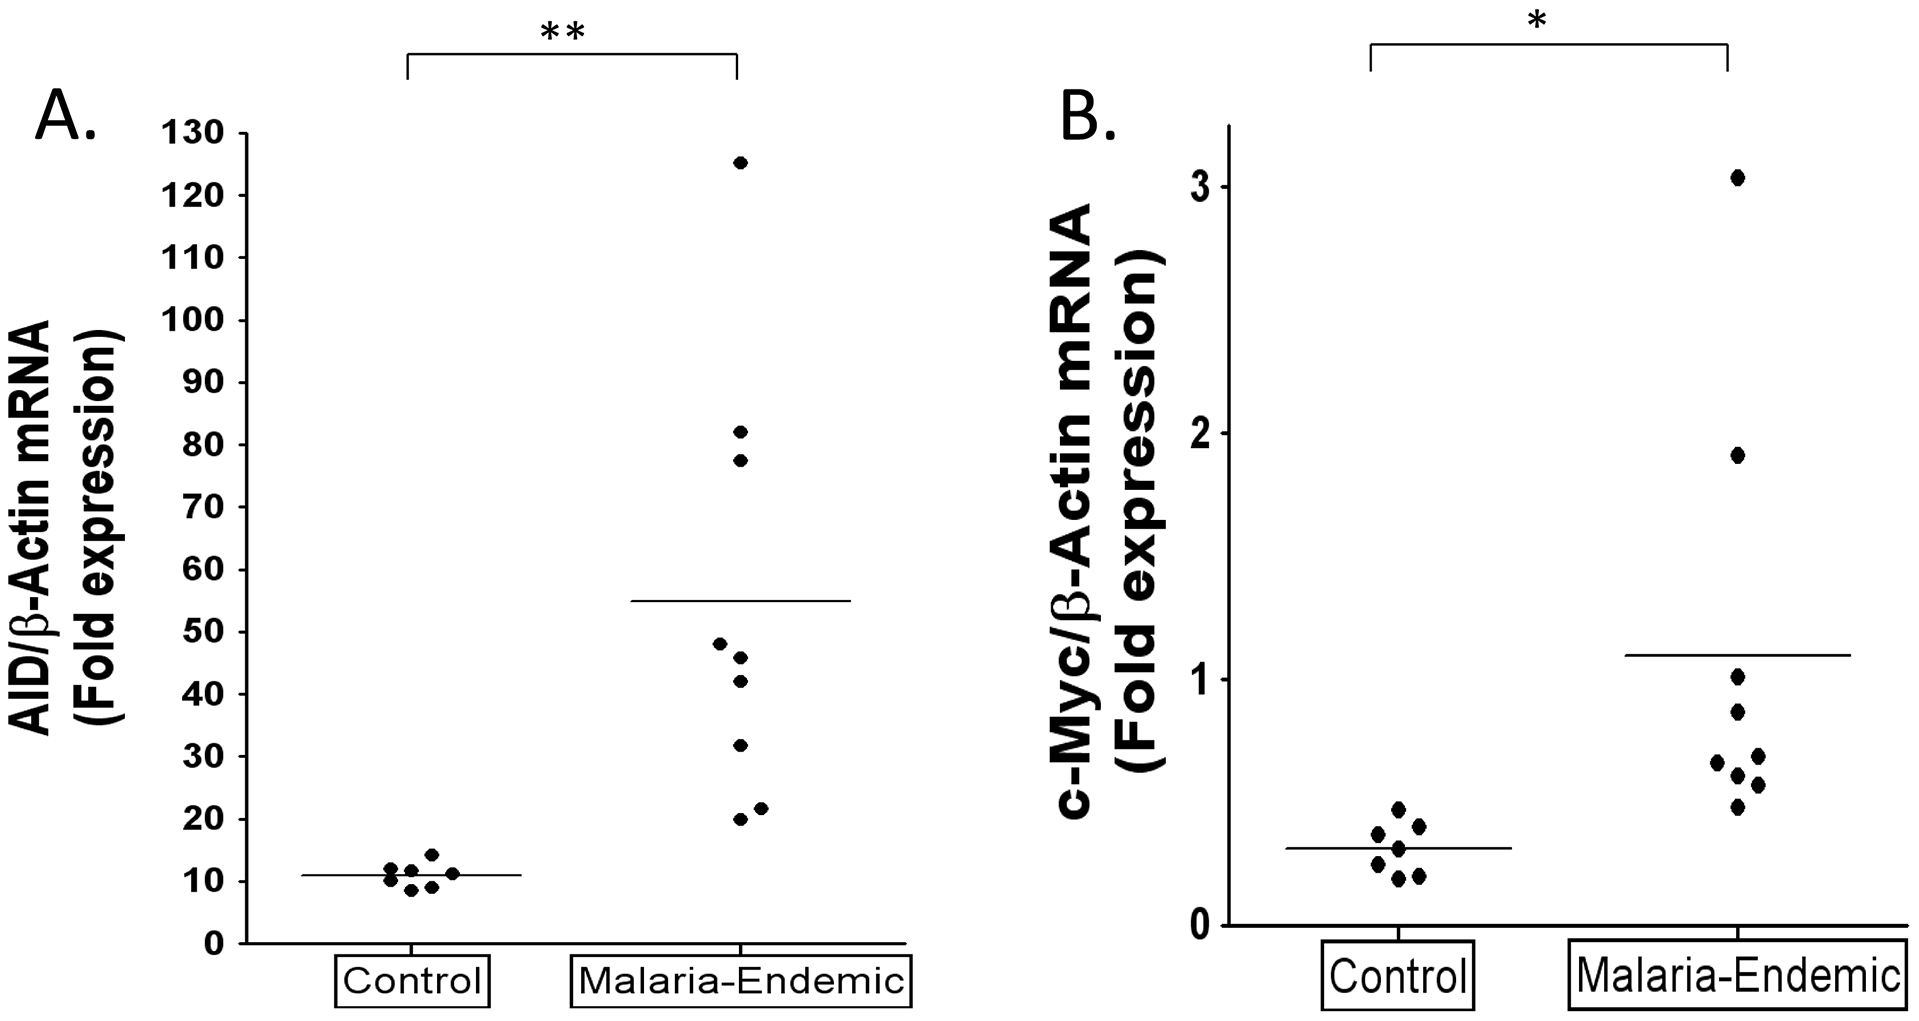 Higher levels of AID and c-myc mRNA in tonsil GC B cells from individuals infected with <i>P. falciparum</i> malaria compared to controls.